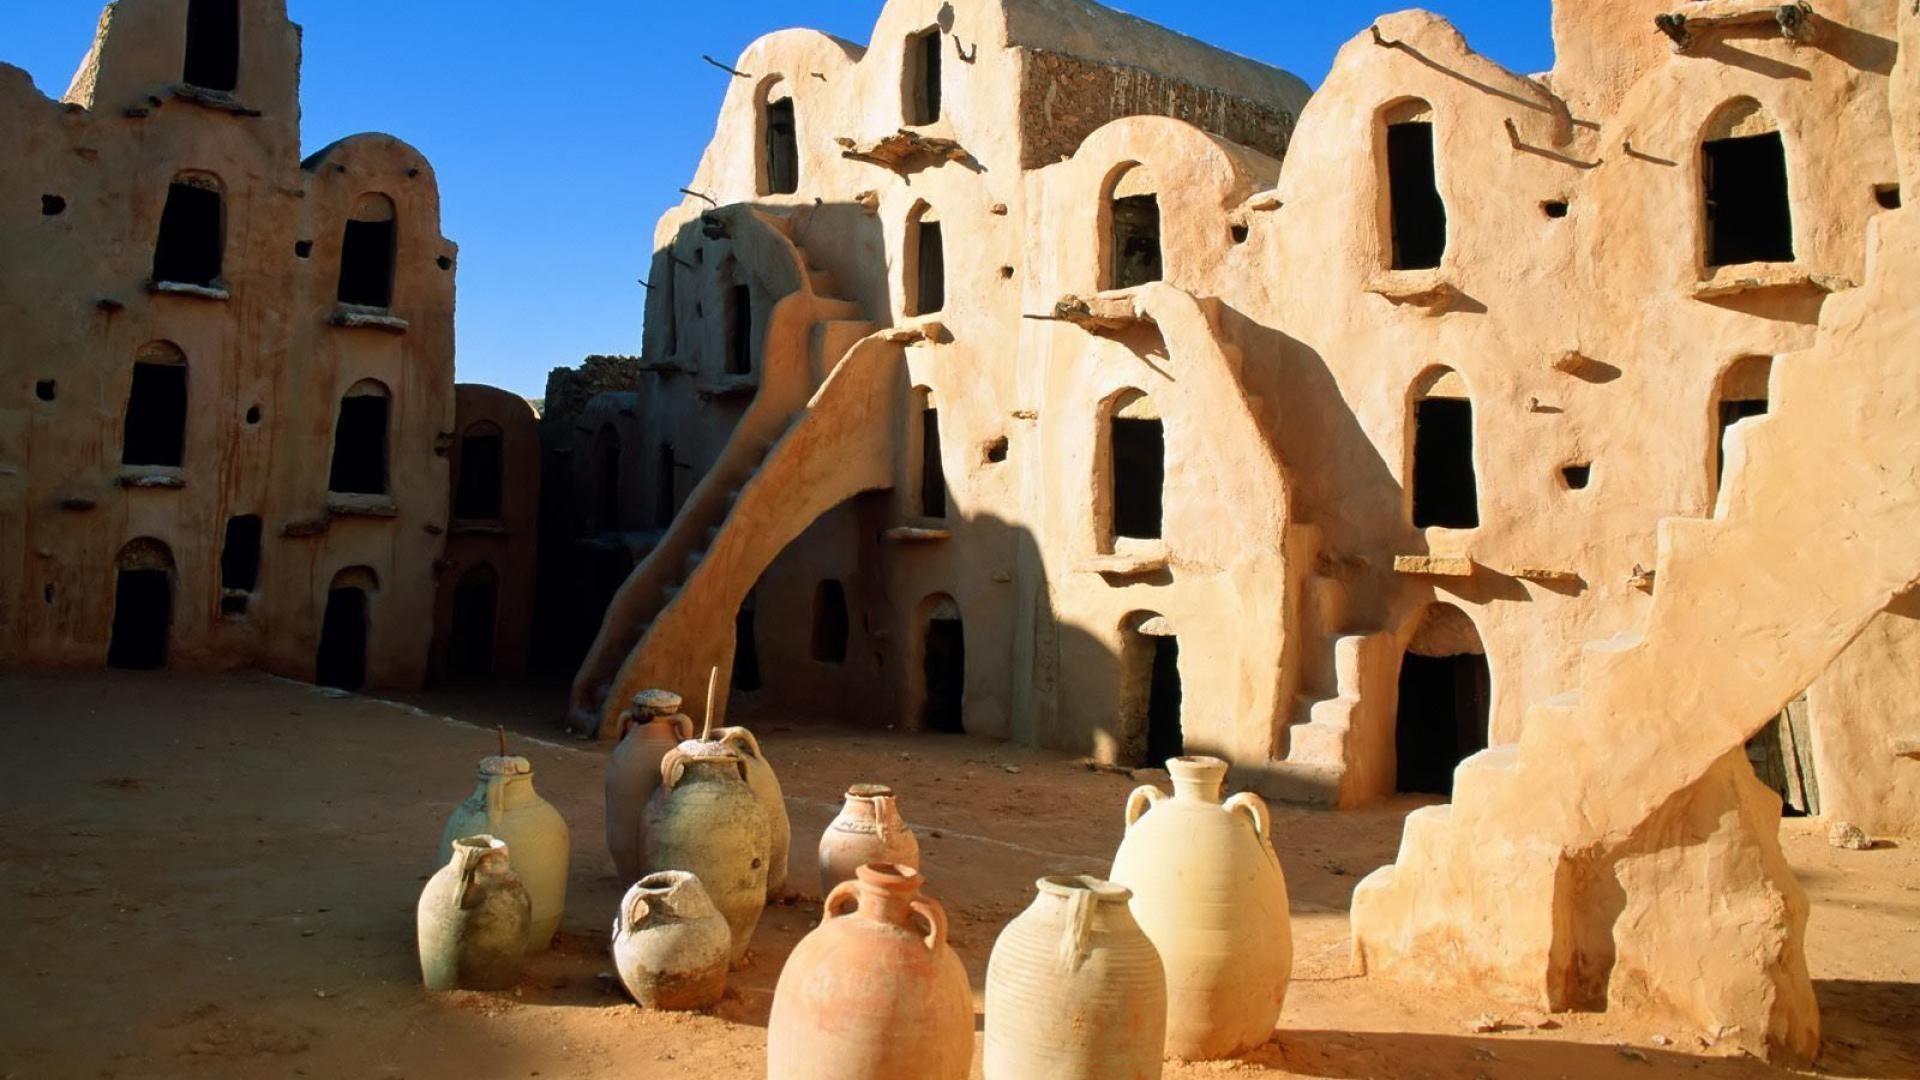 Ancient-ruins-with-pots-in-tunisia-1920x1080-ruins-via-www-all-in-wallpaper-wpc9002196